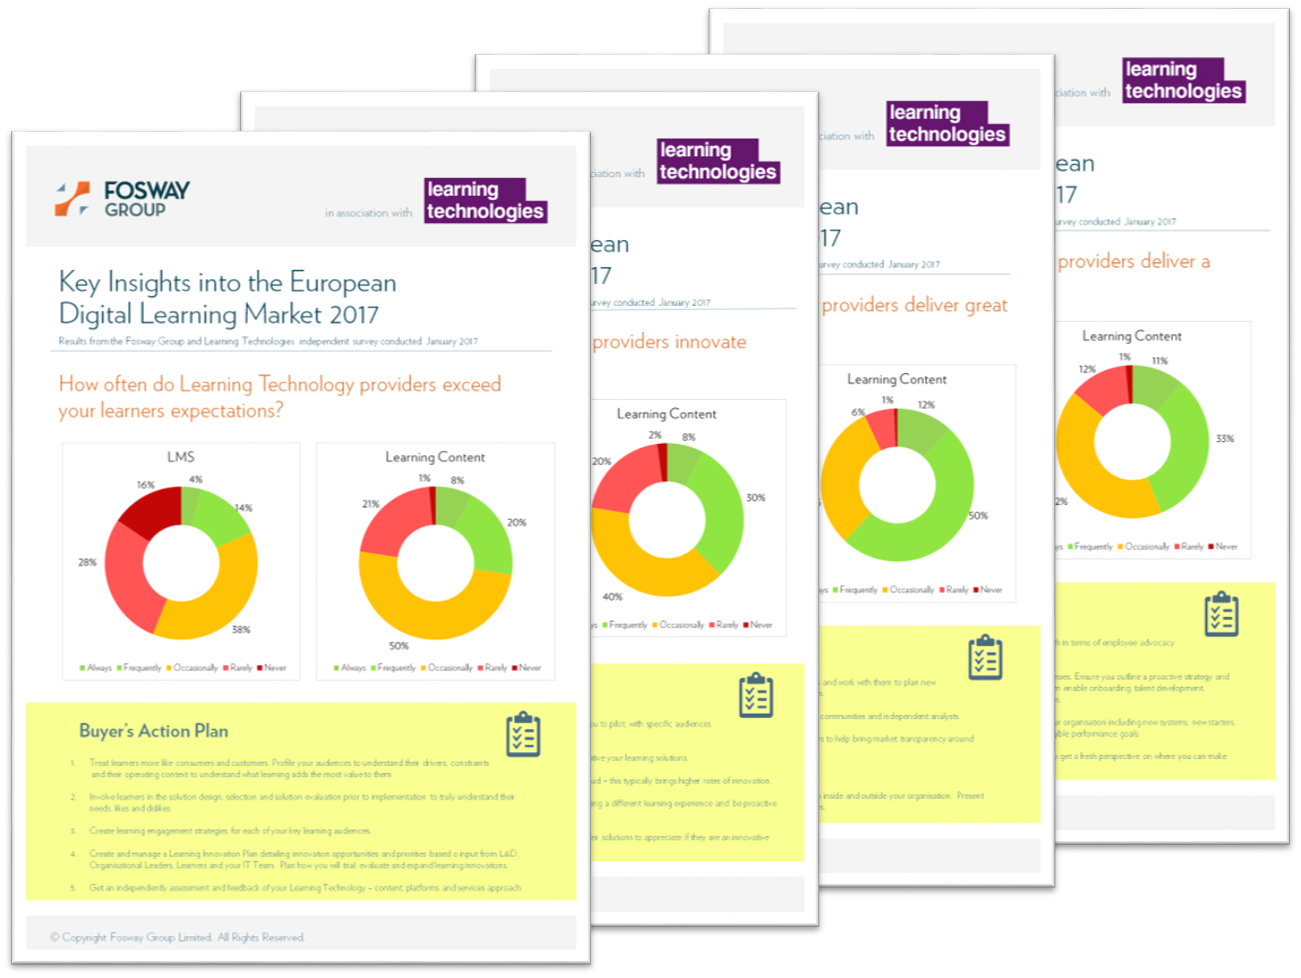 Fosway Digital Learning Realities 2017 Datasheets